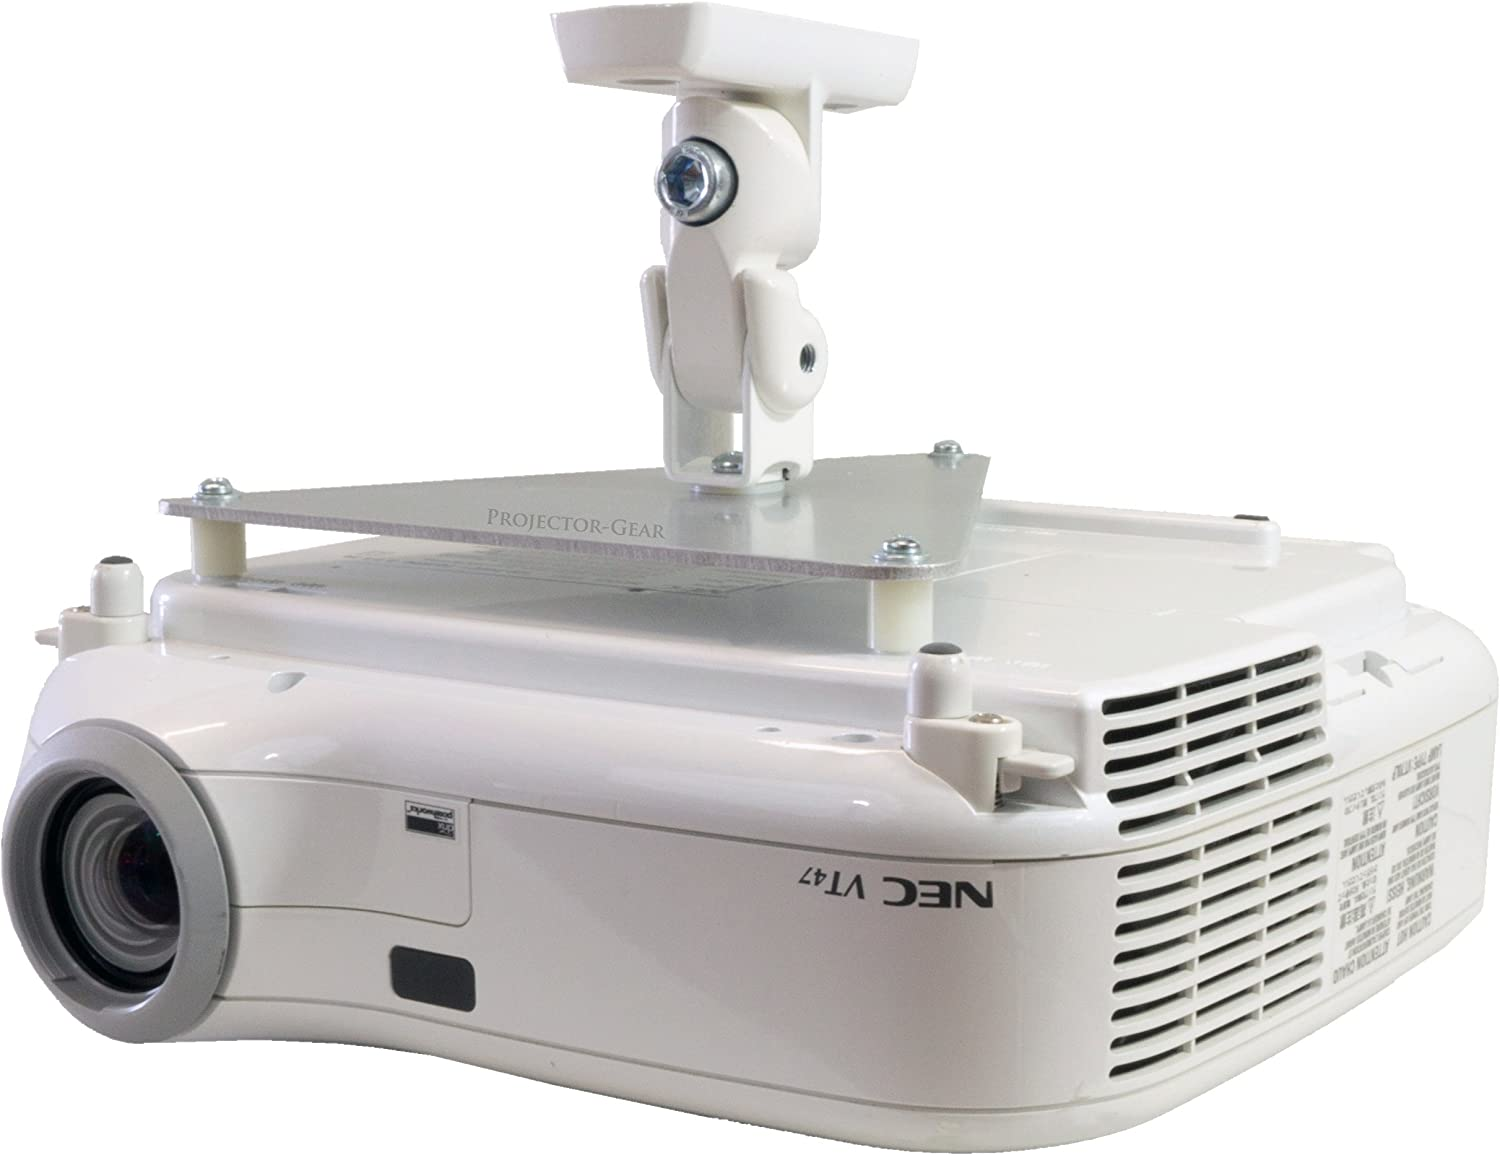 Popular popular Projector-Gear Projector Ceiling Mount Large discharge sale BENQ for HT1070 BH3020